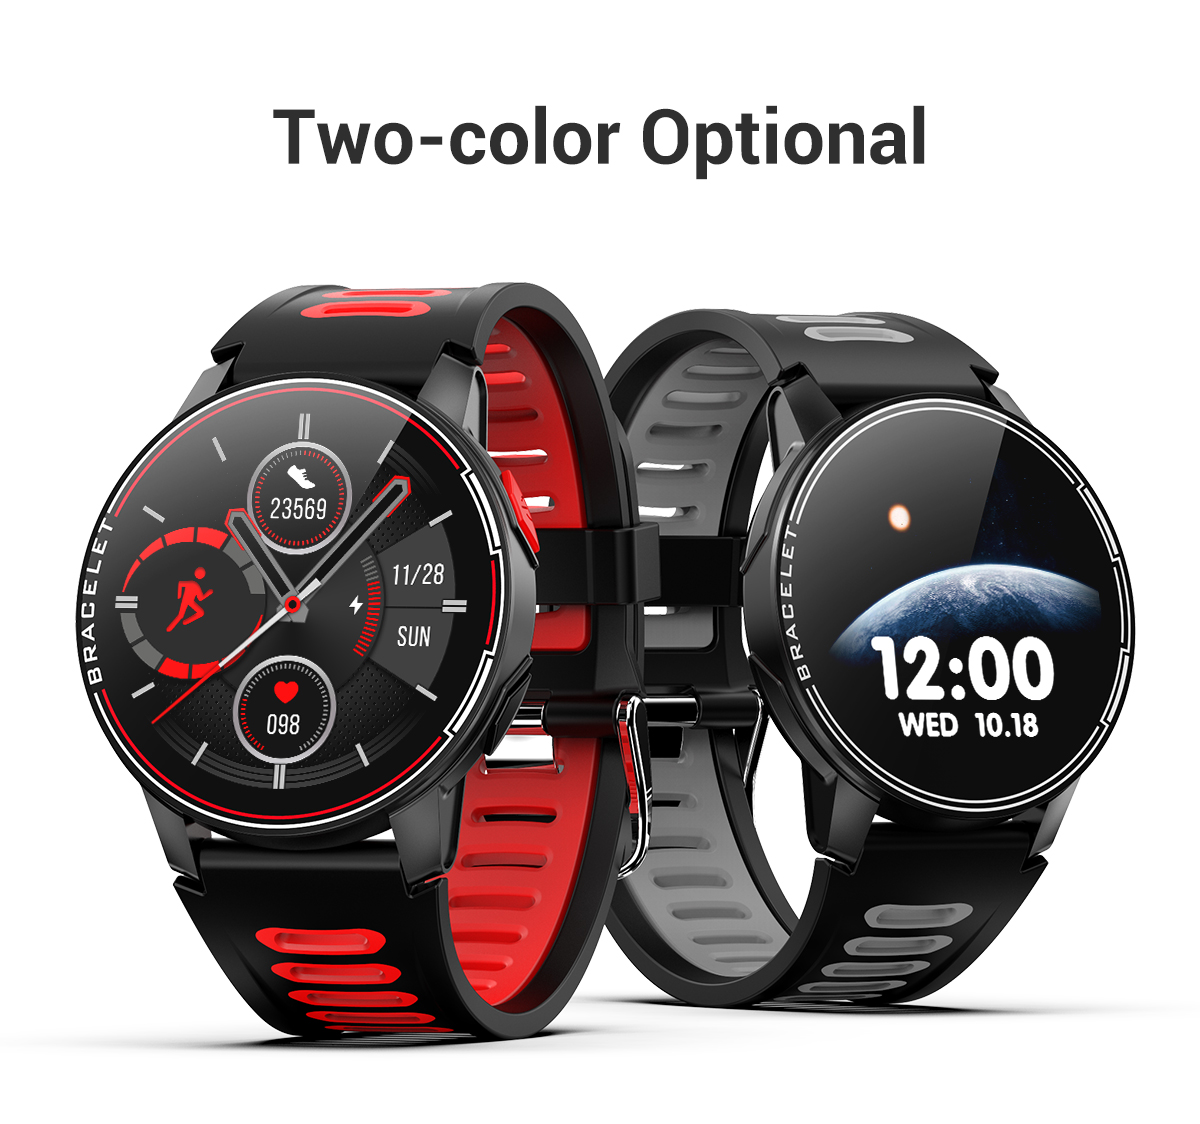 H40561aee82ad490db7cd549b2fefeeddE 2020 New L6 Smart Watch IP68 Waterproof Sport Men Women Bluetooth Smartwatch Fitness Tracker Heart Rate Monitor For Android IOS